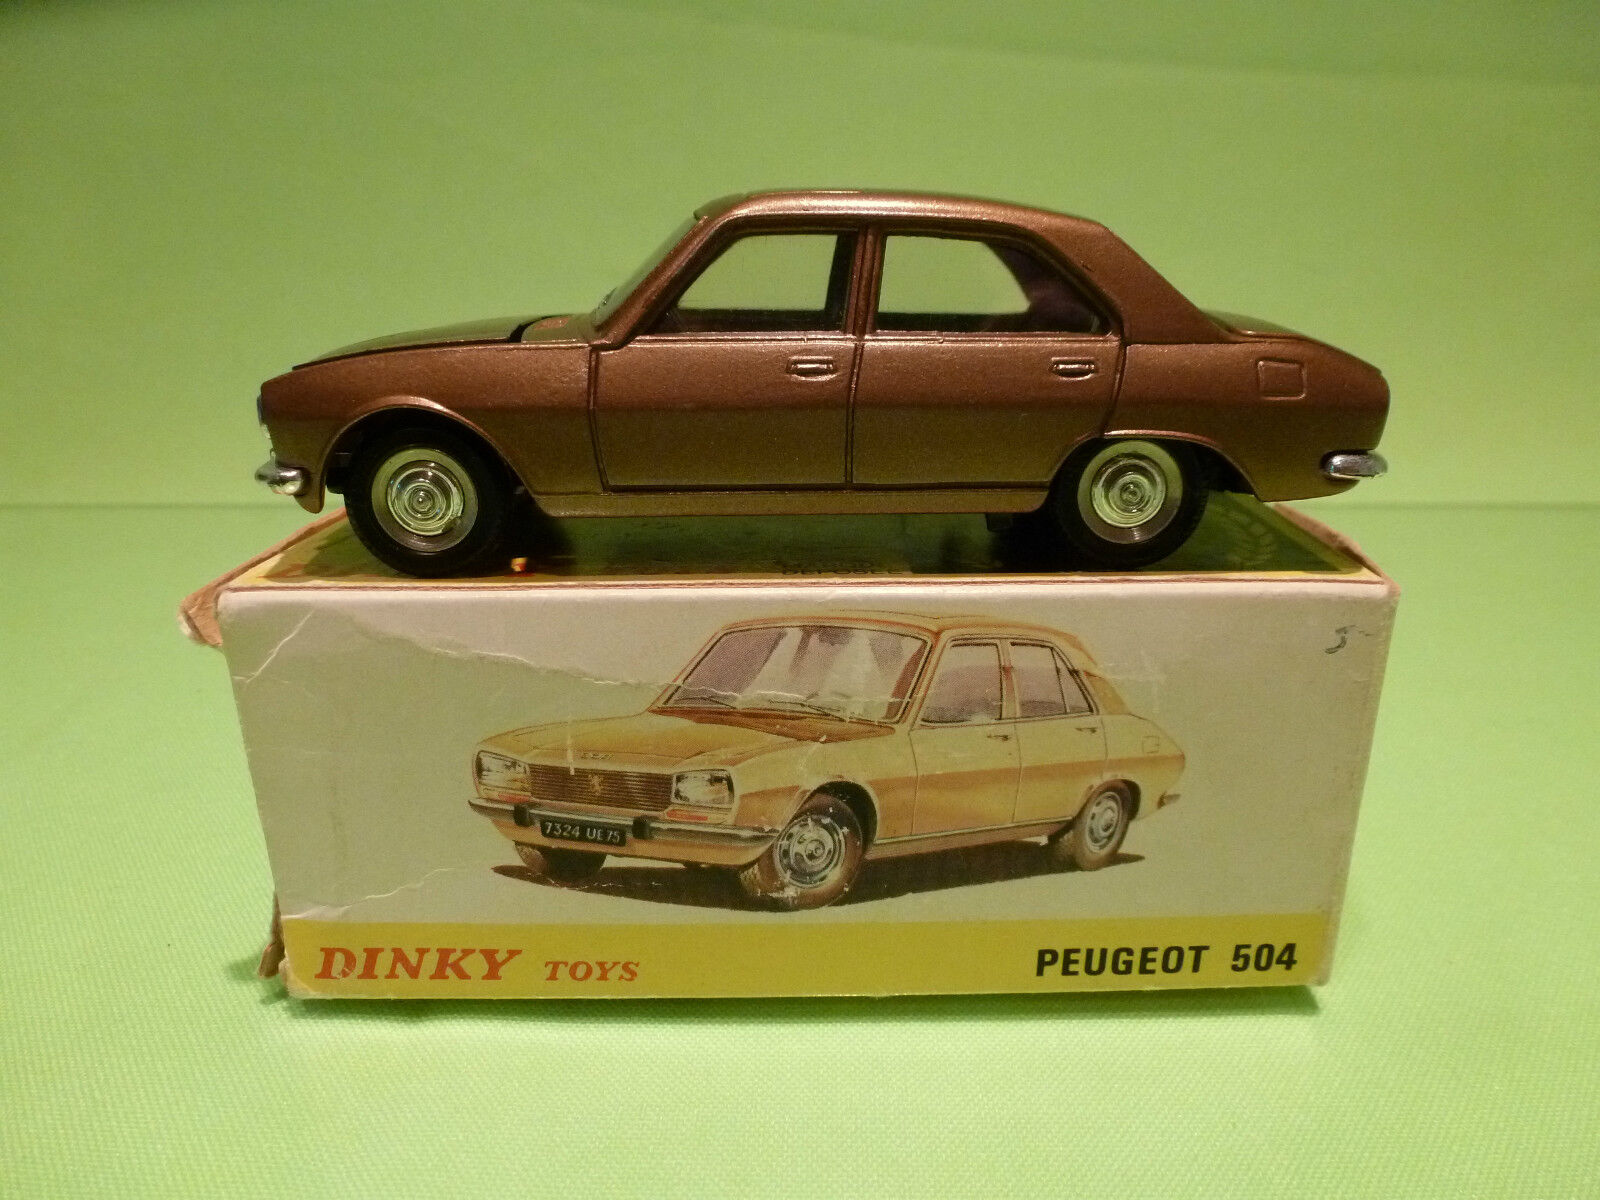 DINKY TOYS 1452  PEUGEOT 504 - BRONZE 1 43 - RARE SELTEN - EXCELLENT IN BOX